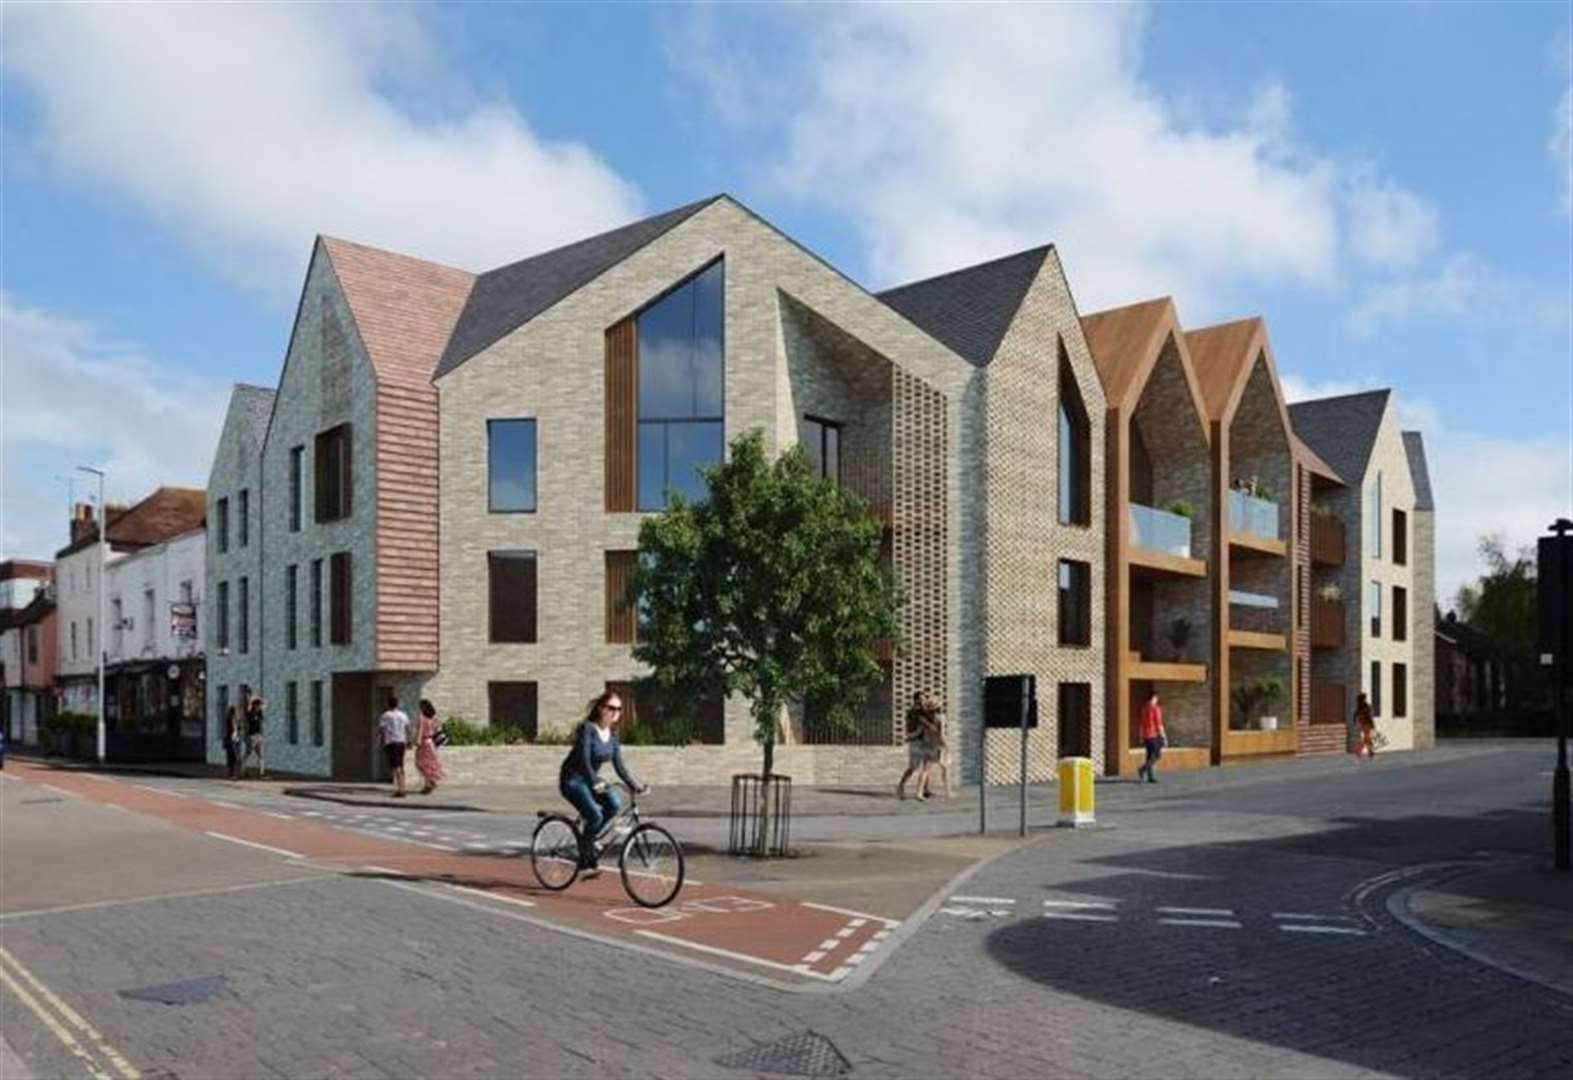 Luxury flats to replace garage